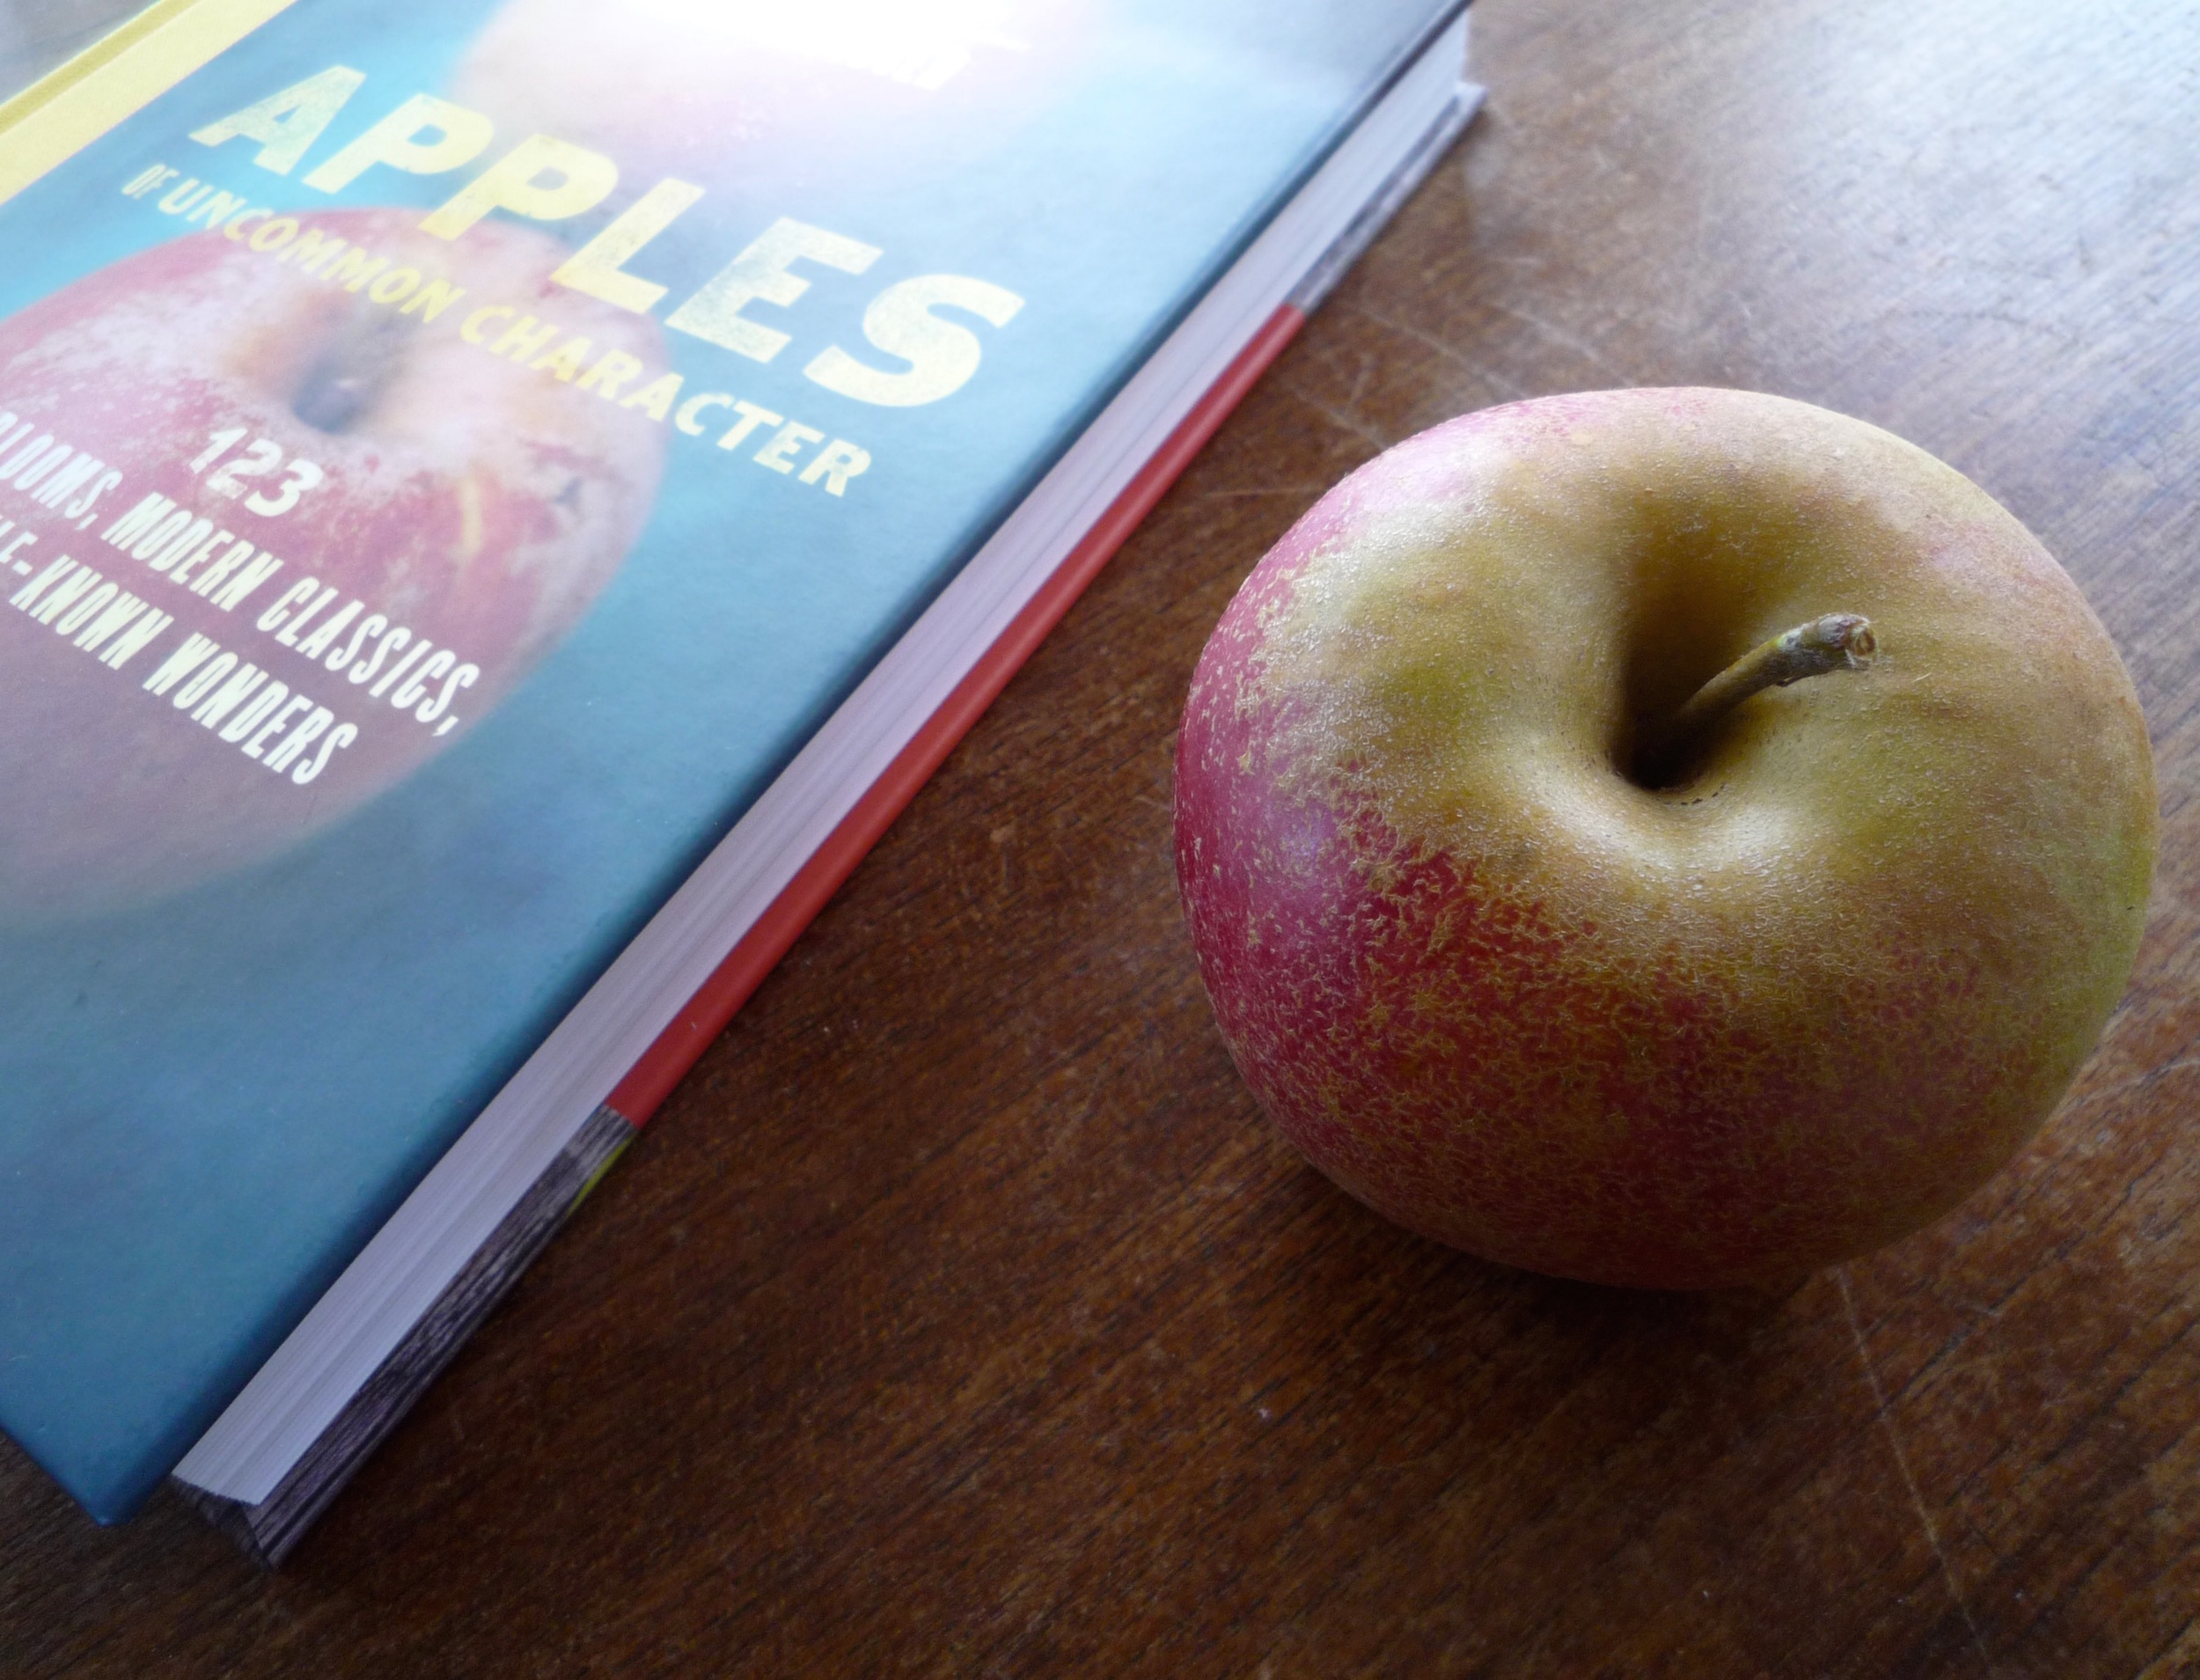 fig. b:  apples of uncommon character